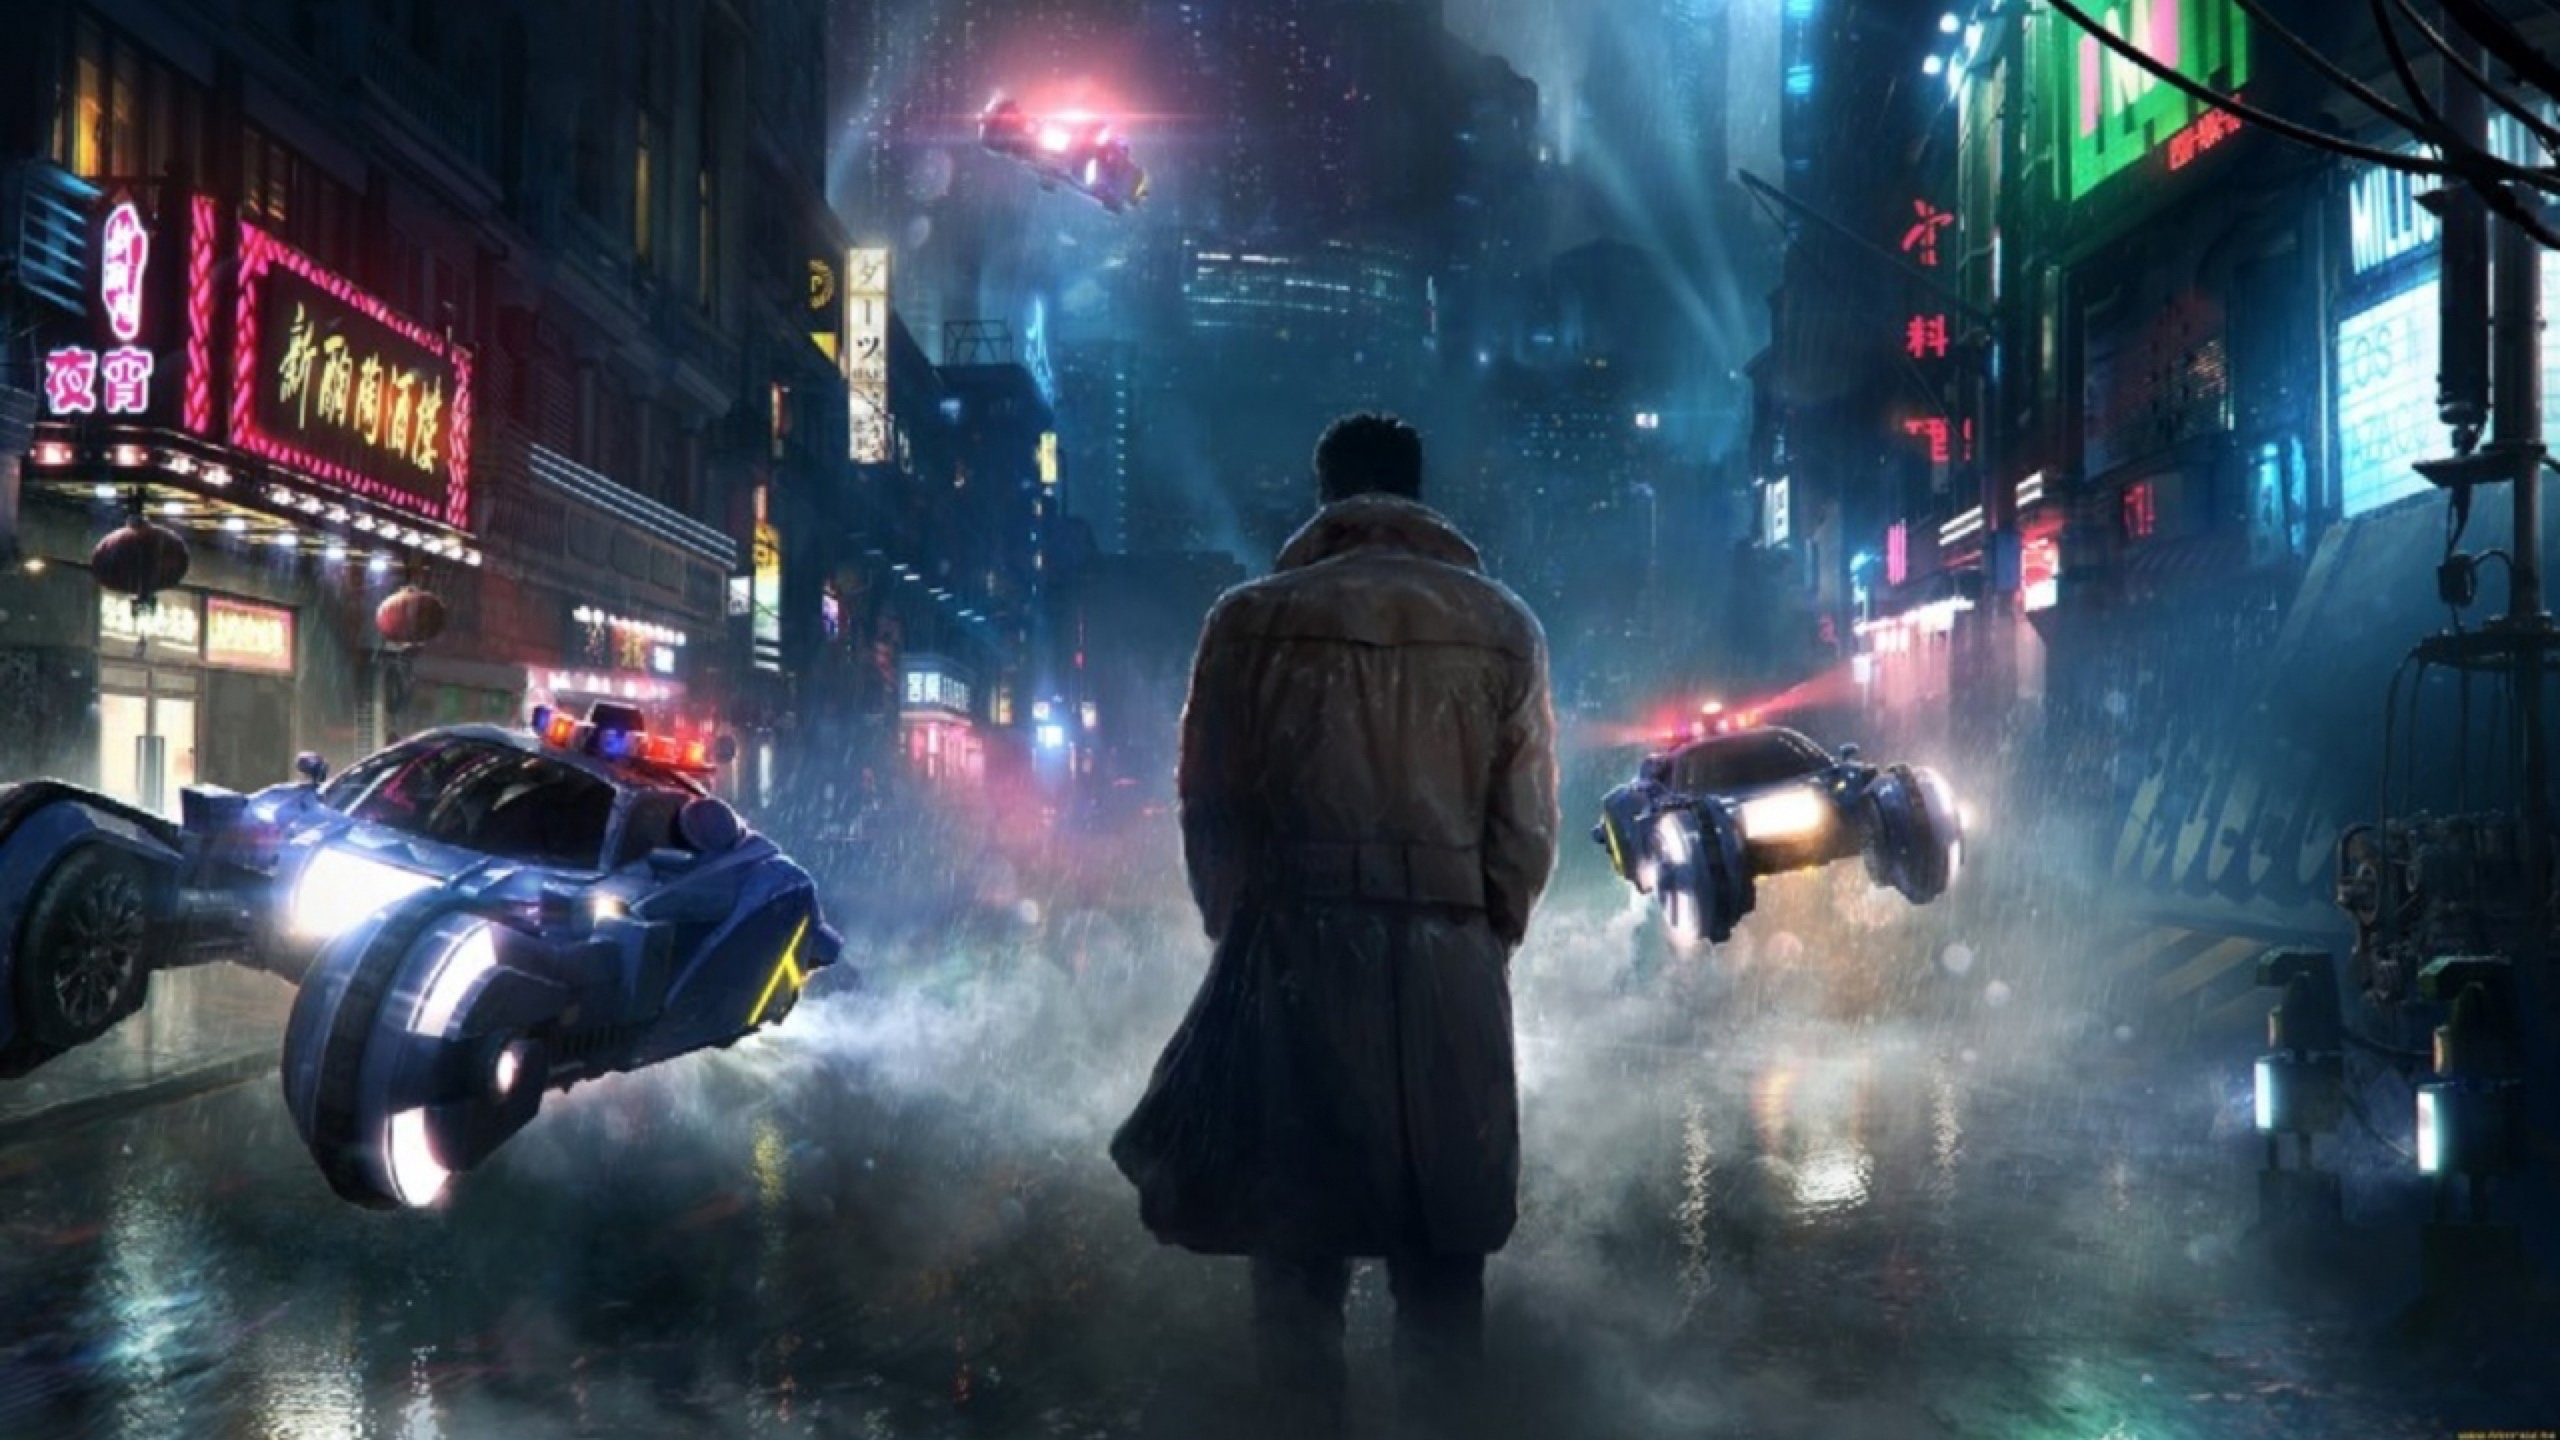 blade runner 2049 follows original path at box office